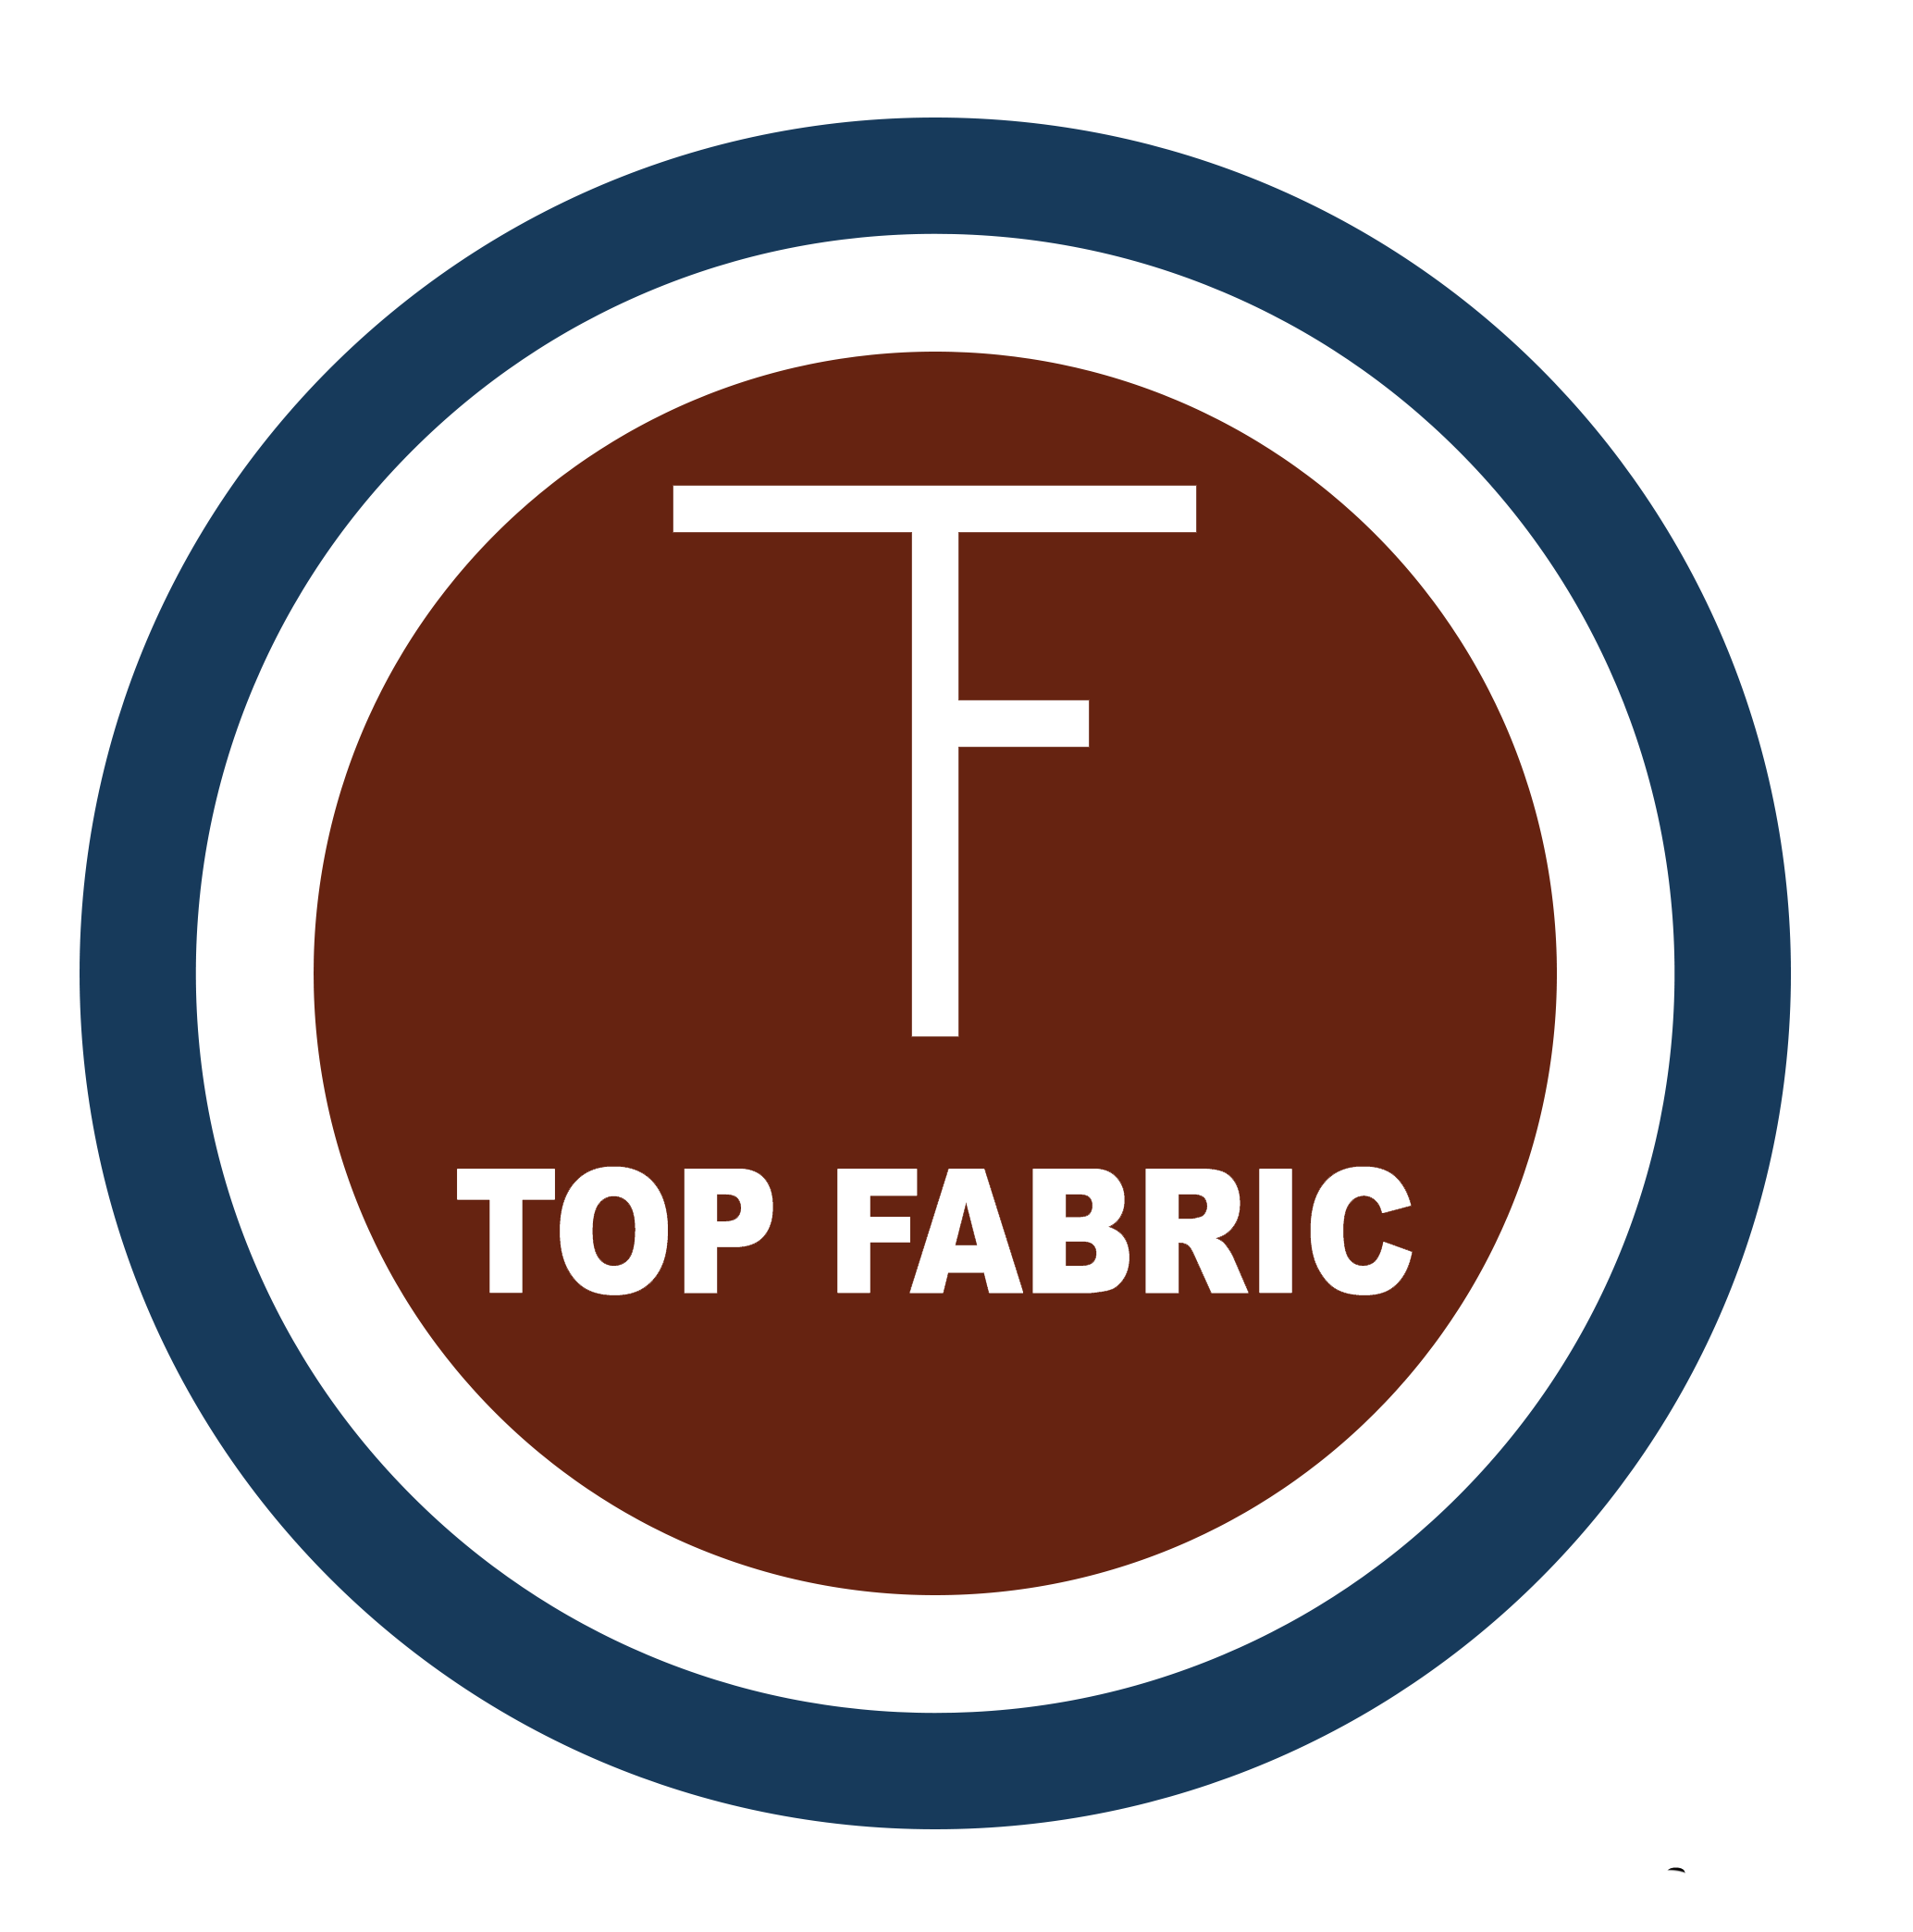 Top Fabric